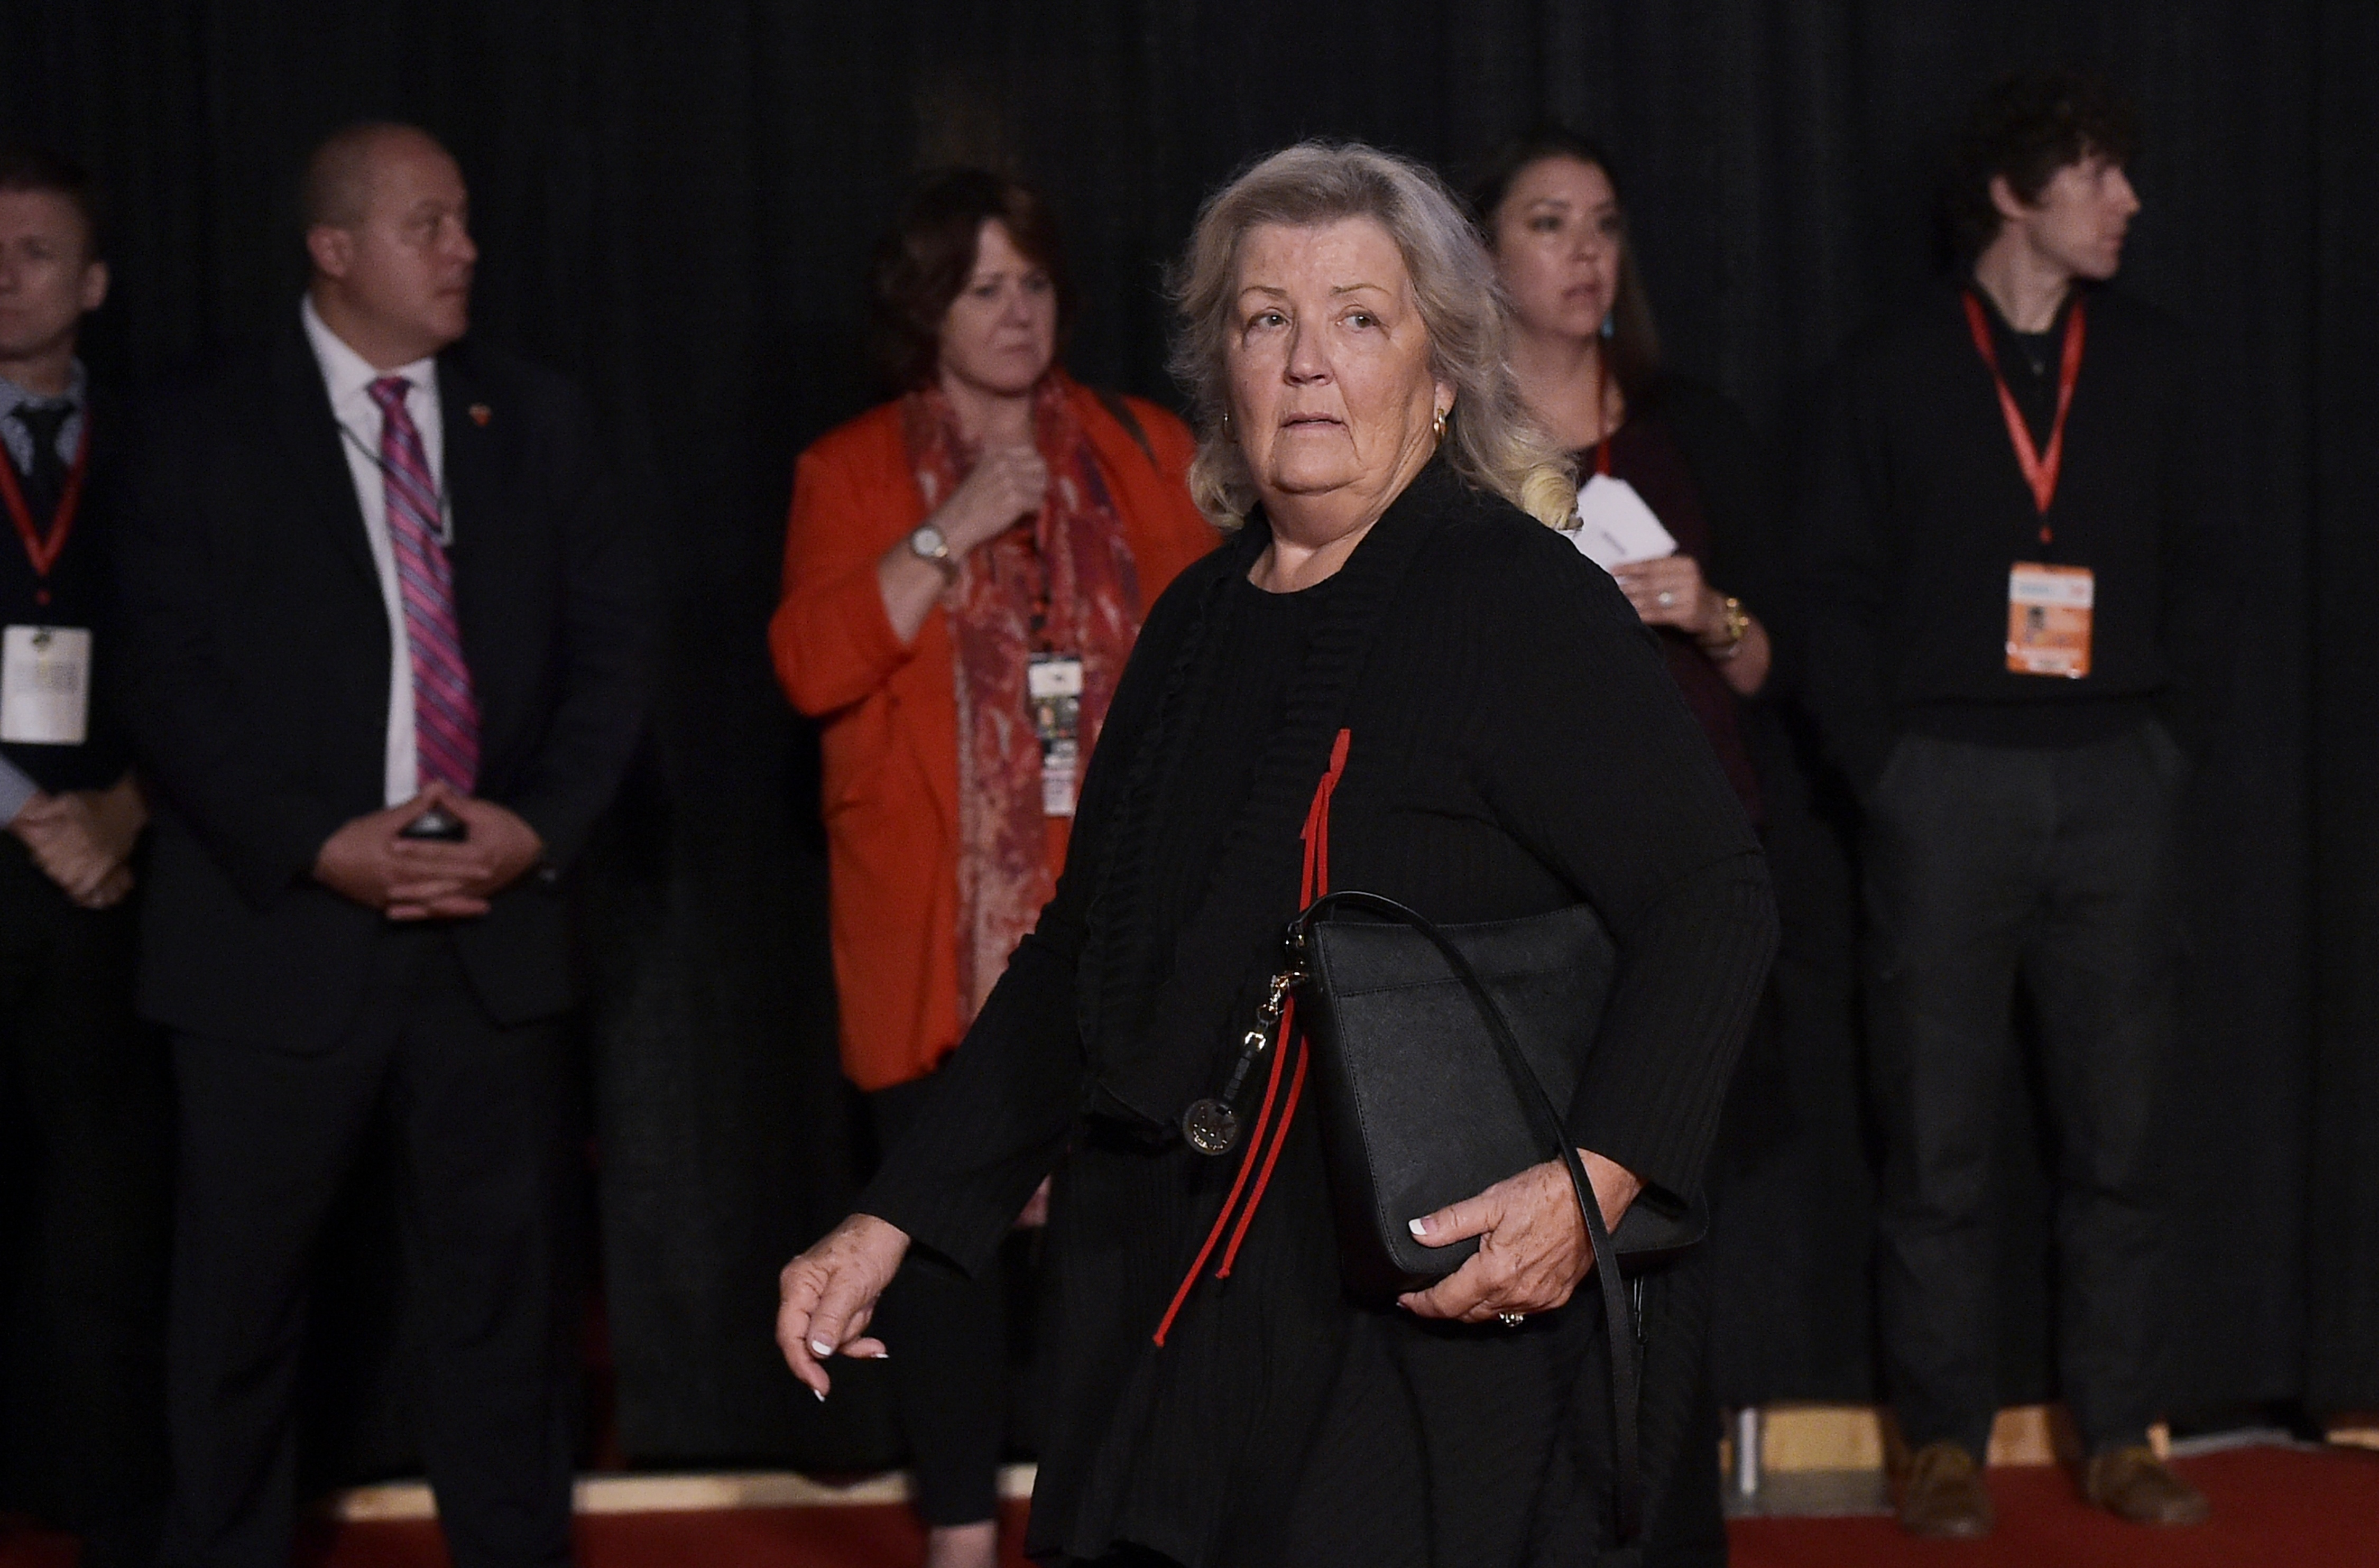 Juanita Broaddrick arrives for the second presidential debate between Republican presidential nominee Donald Trump and Democratic contender Hillary Clinton at Washington University in St. Louis, Missouri on October 9, 2016. (MANDEL NGAN/AFP via Getty Images)